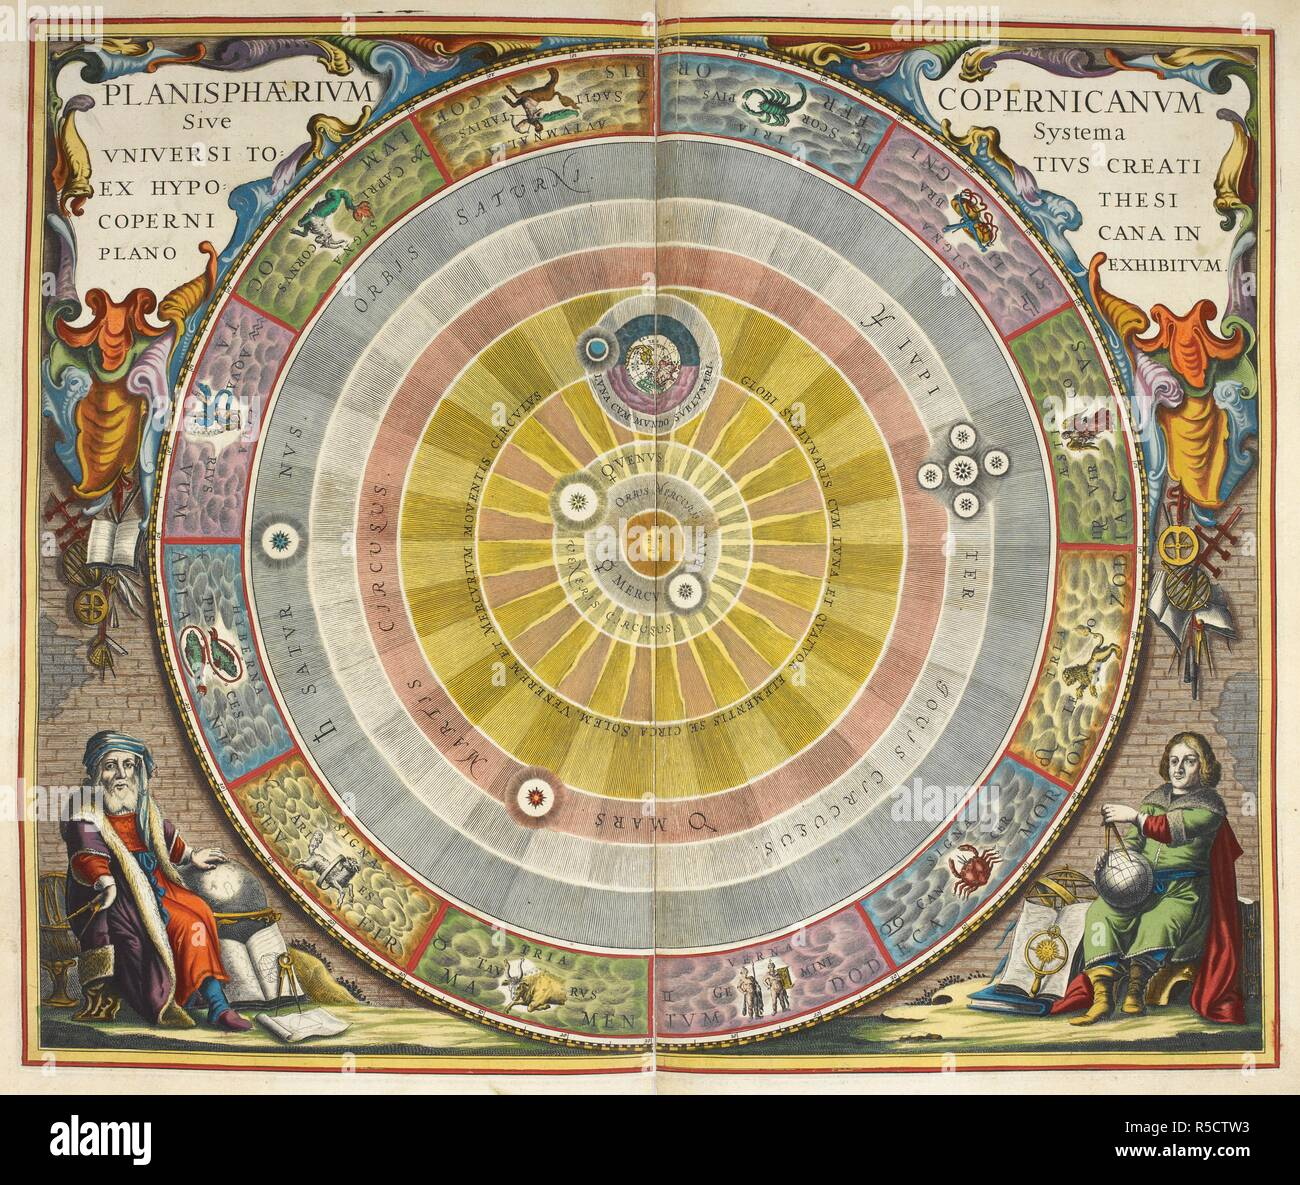 Copernican System Stock Photos & Copernican System Stock Images - Alamy